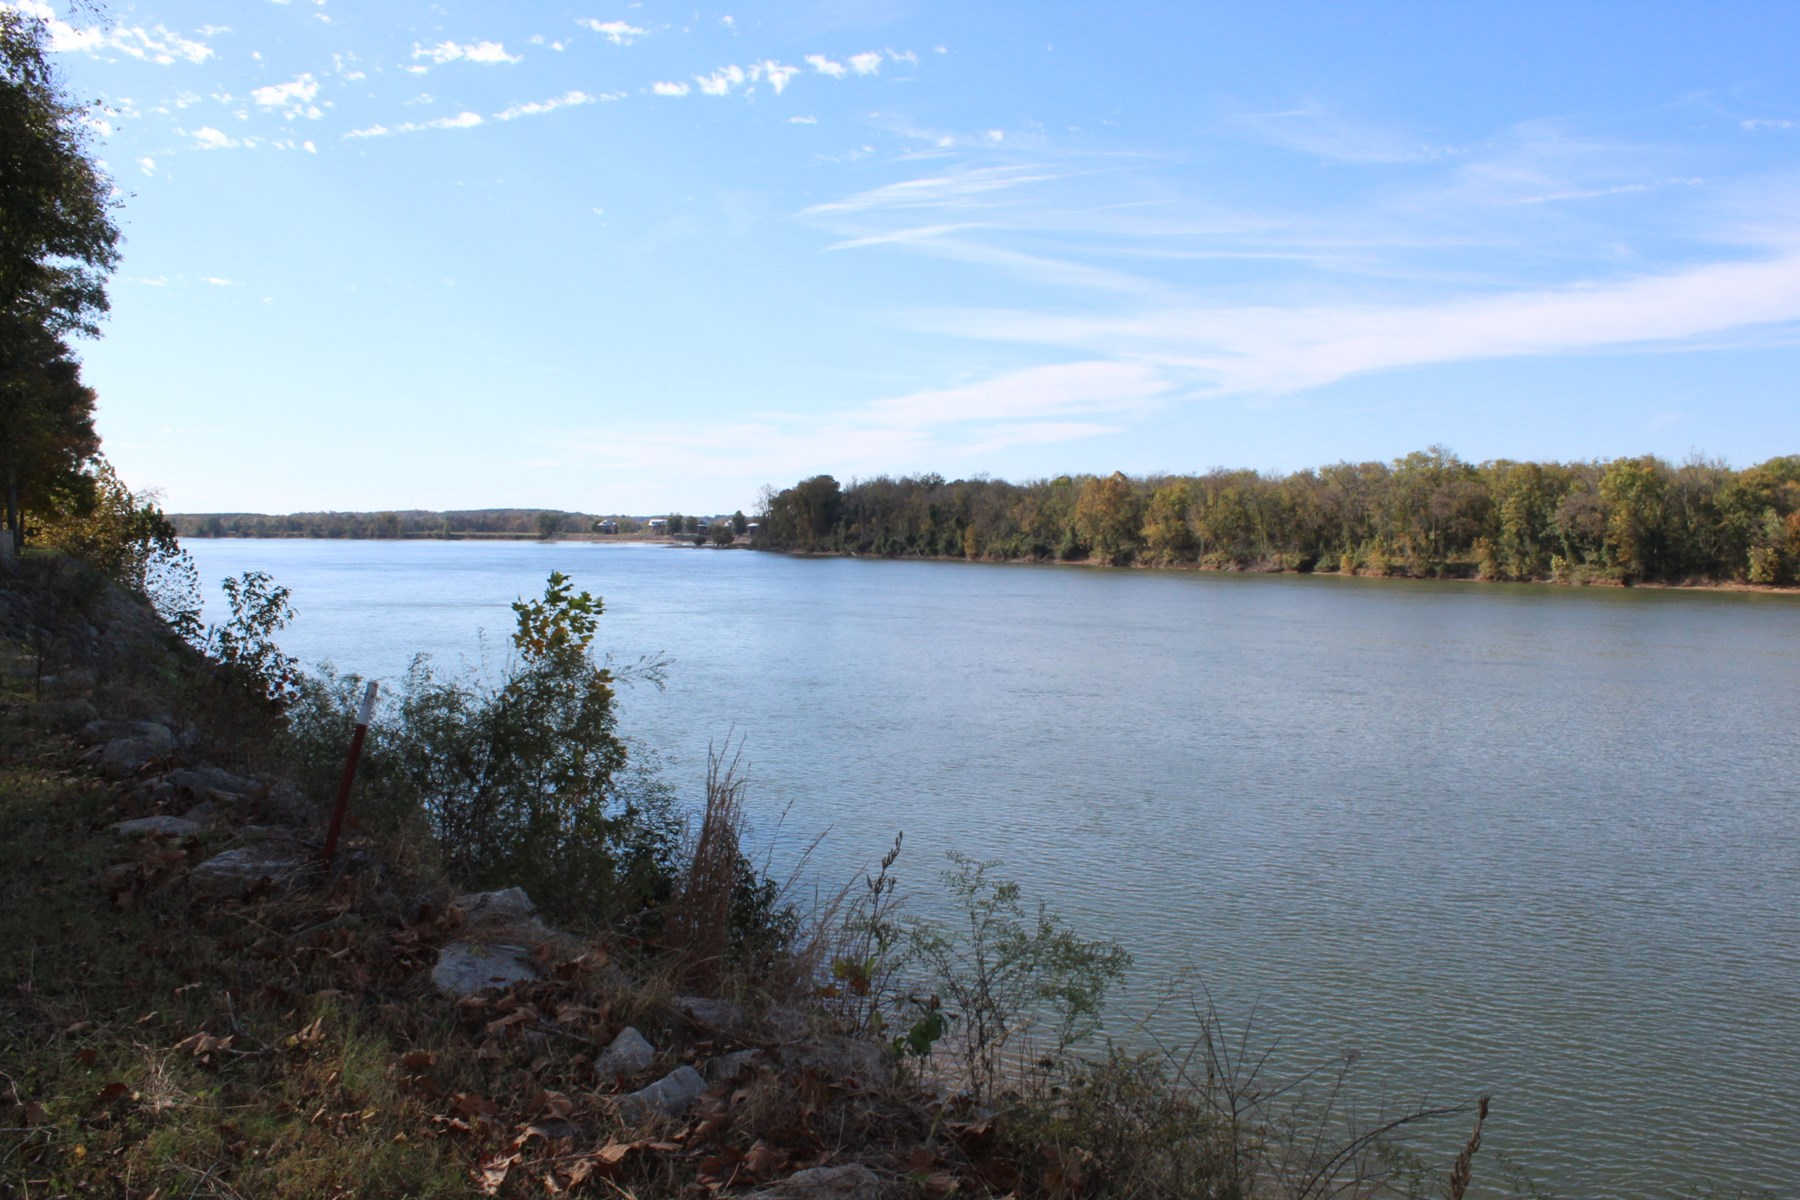 WATERFRONT LOT FOR SALE ON THE TN RIVER - RIVER FRONT LAND